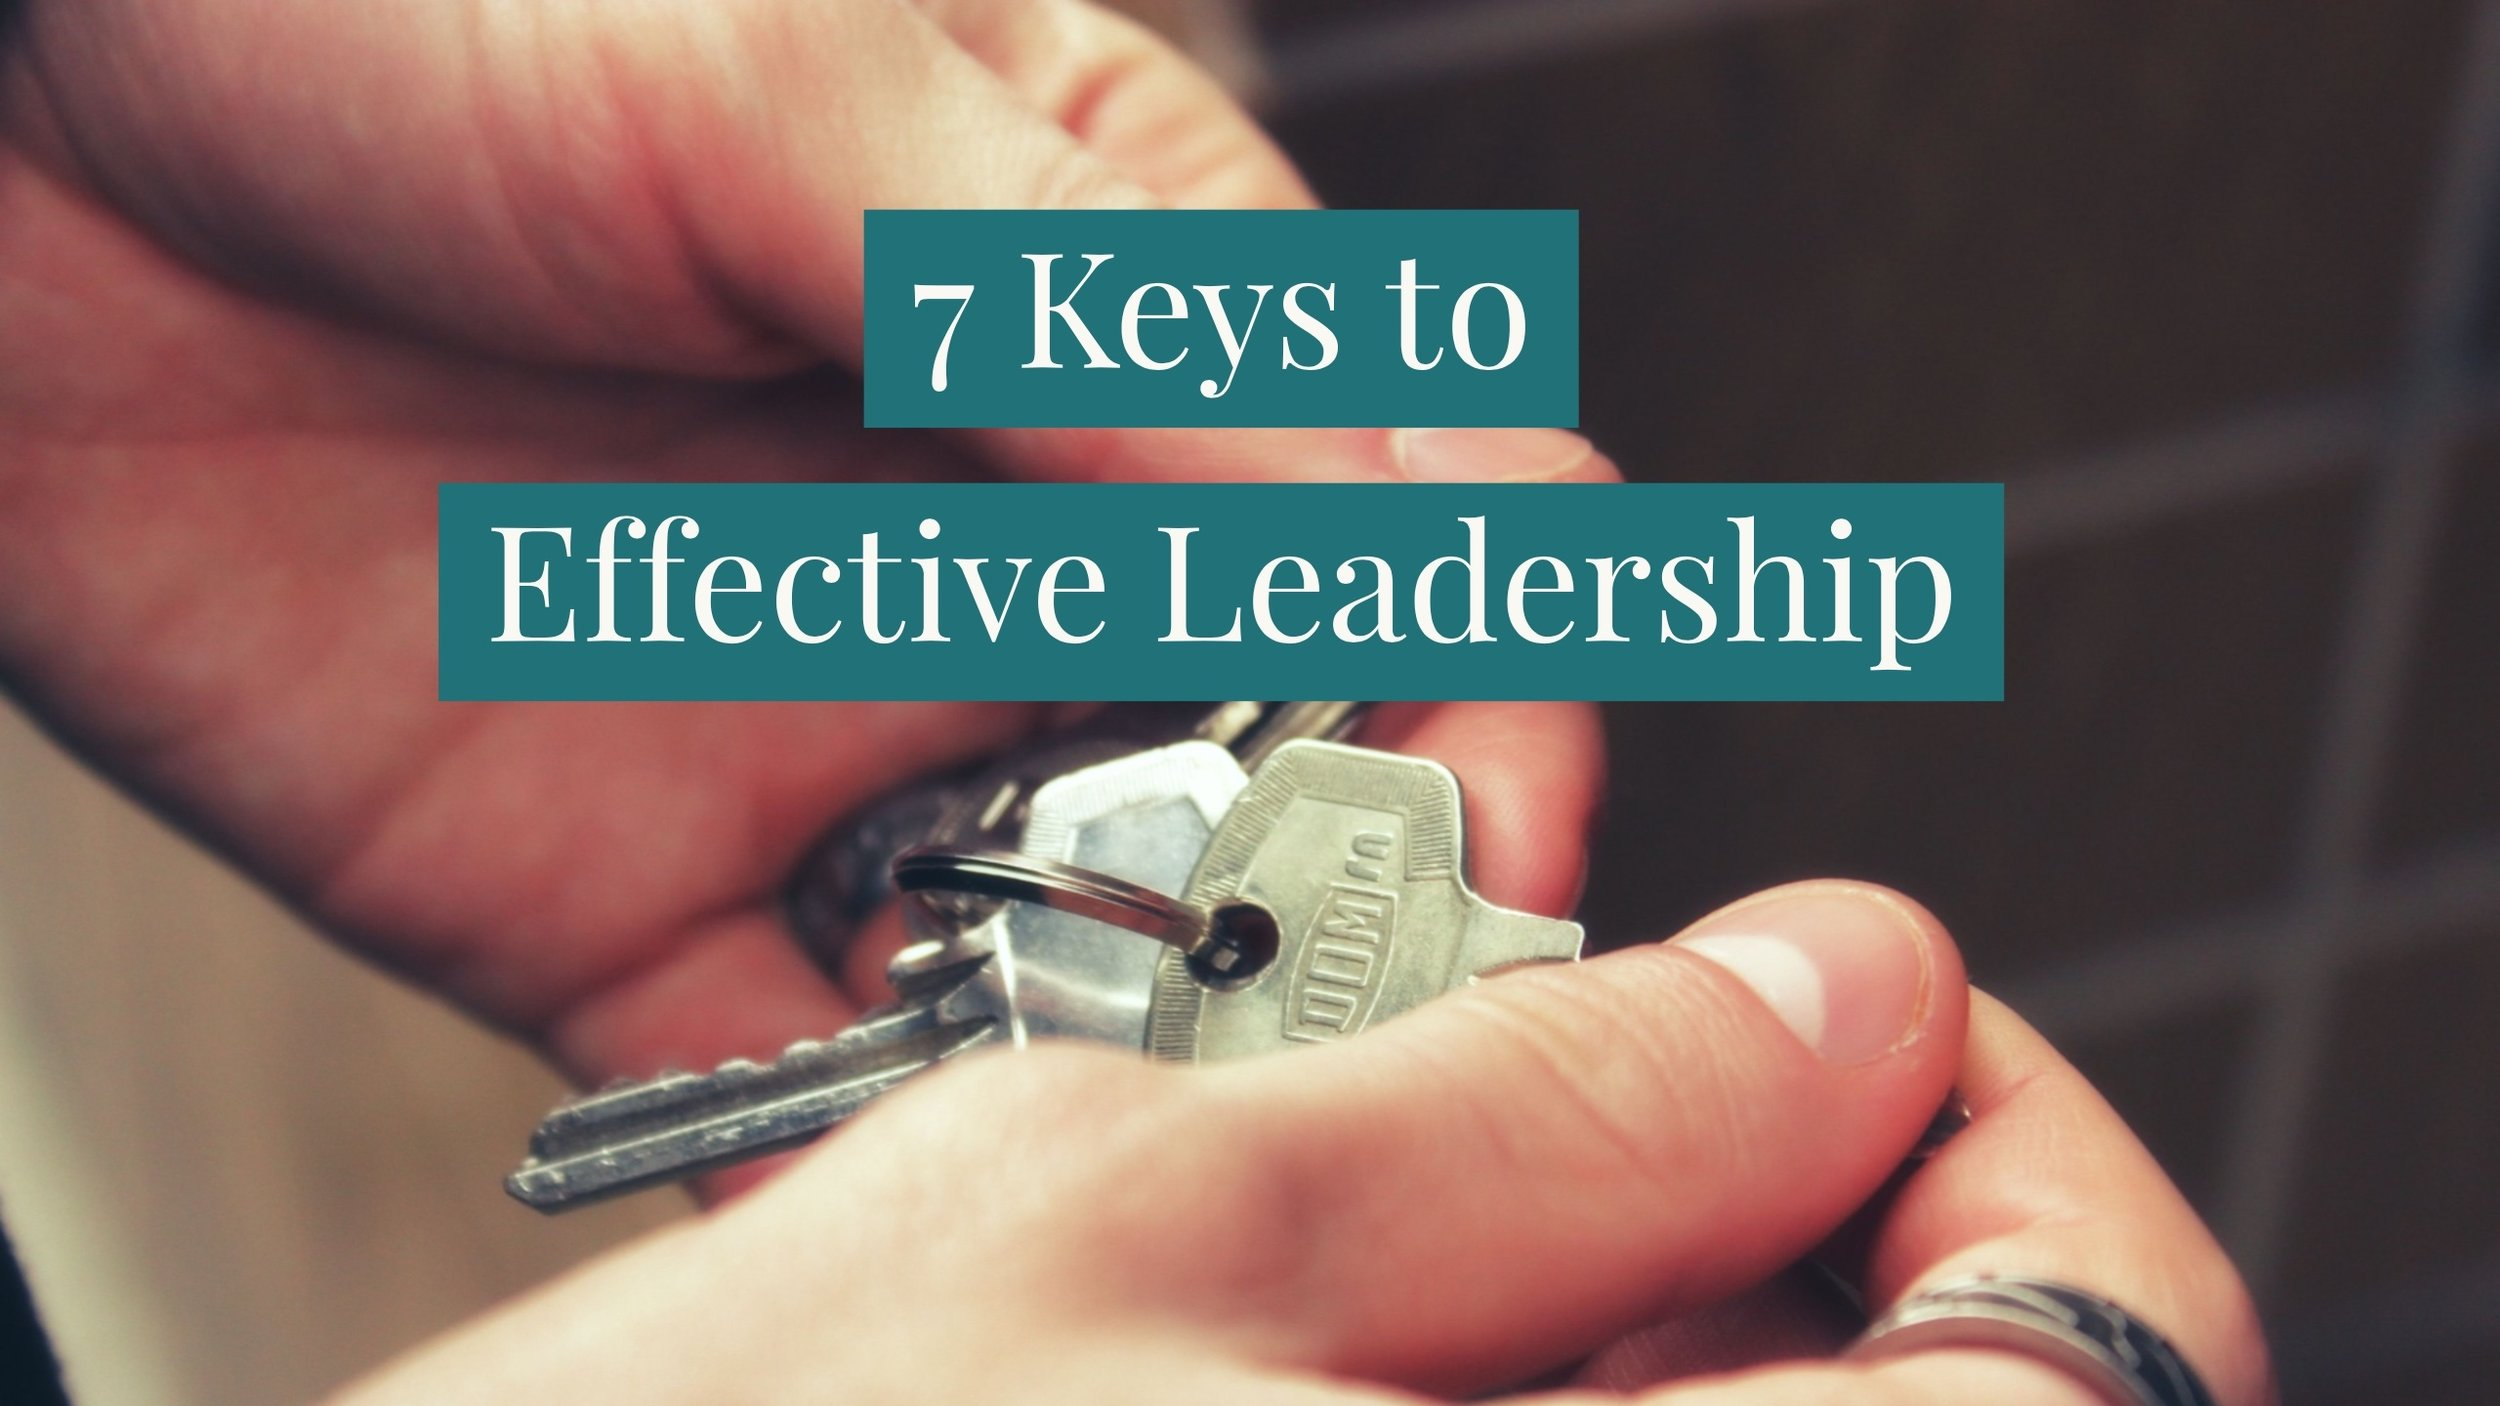 7 Keys to Effective Leadership donowsley.com.jpg